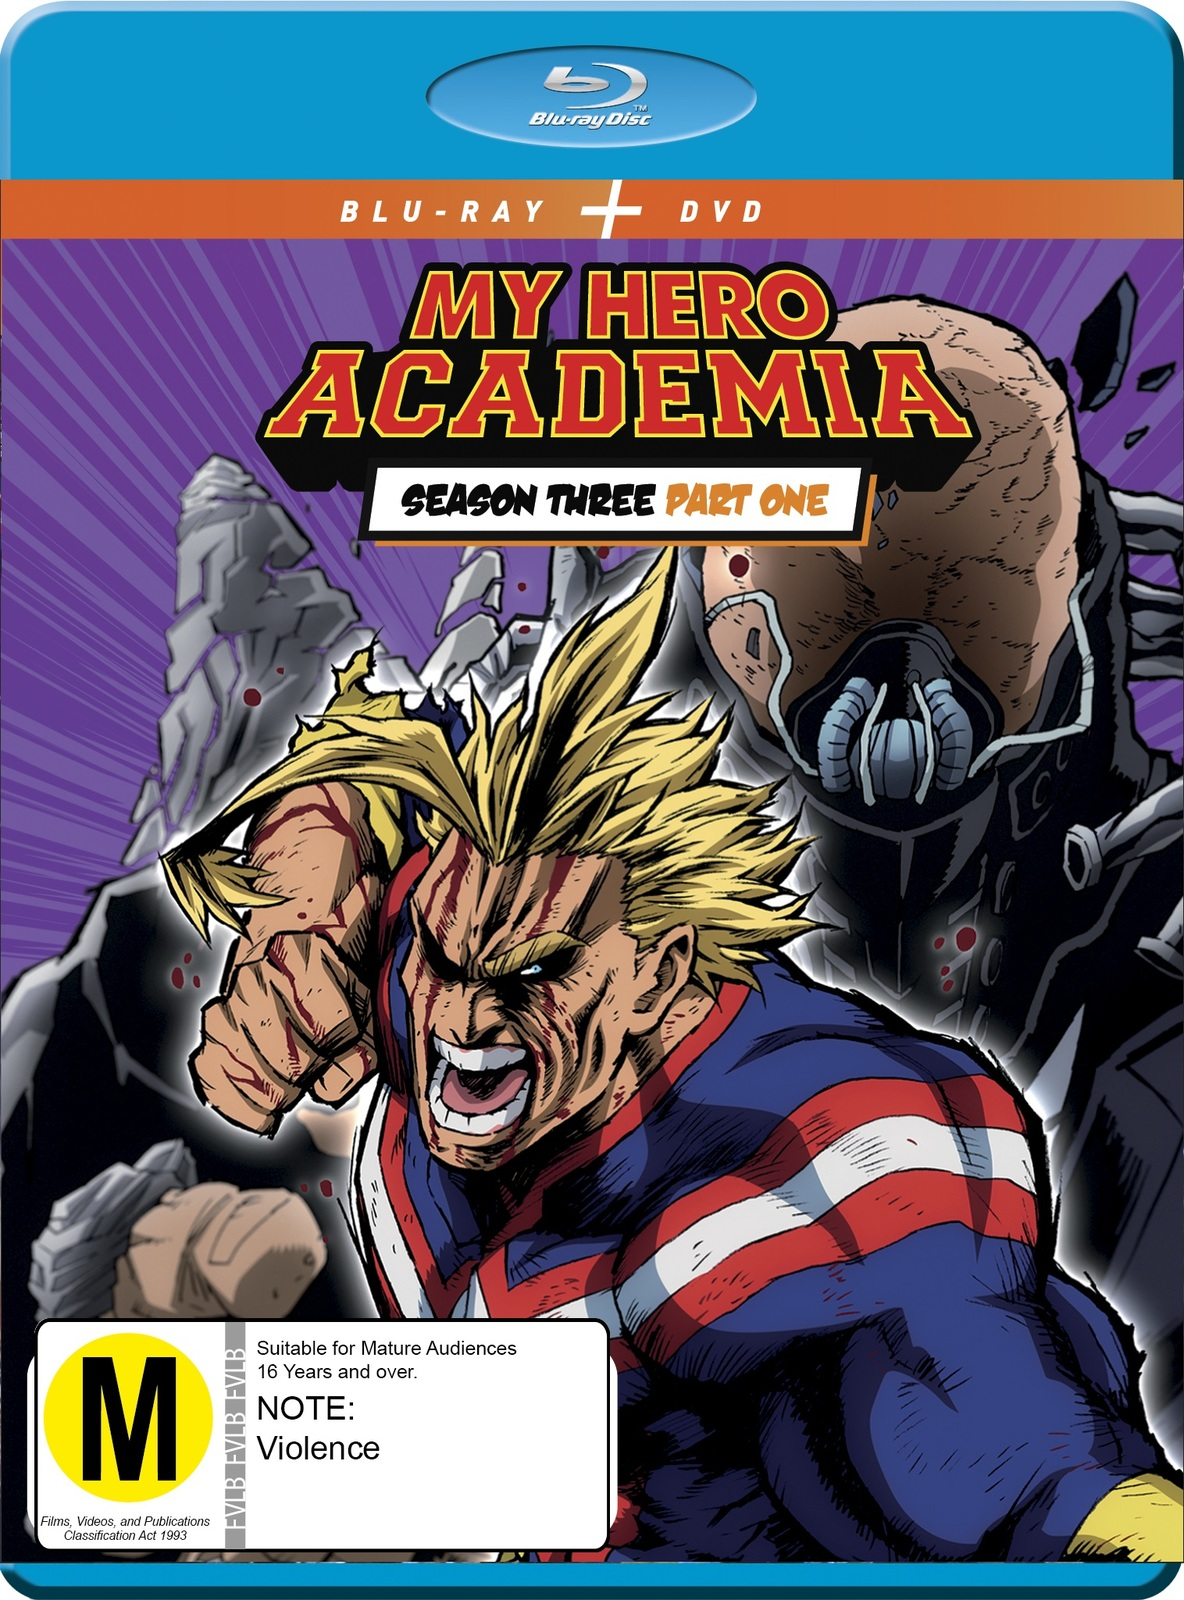 My Hero Academia - Season 3: Part 1 Blu-ray & DVD Combo on DVD, Blu-ray image